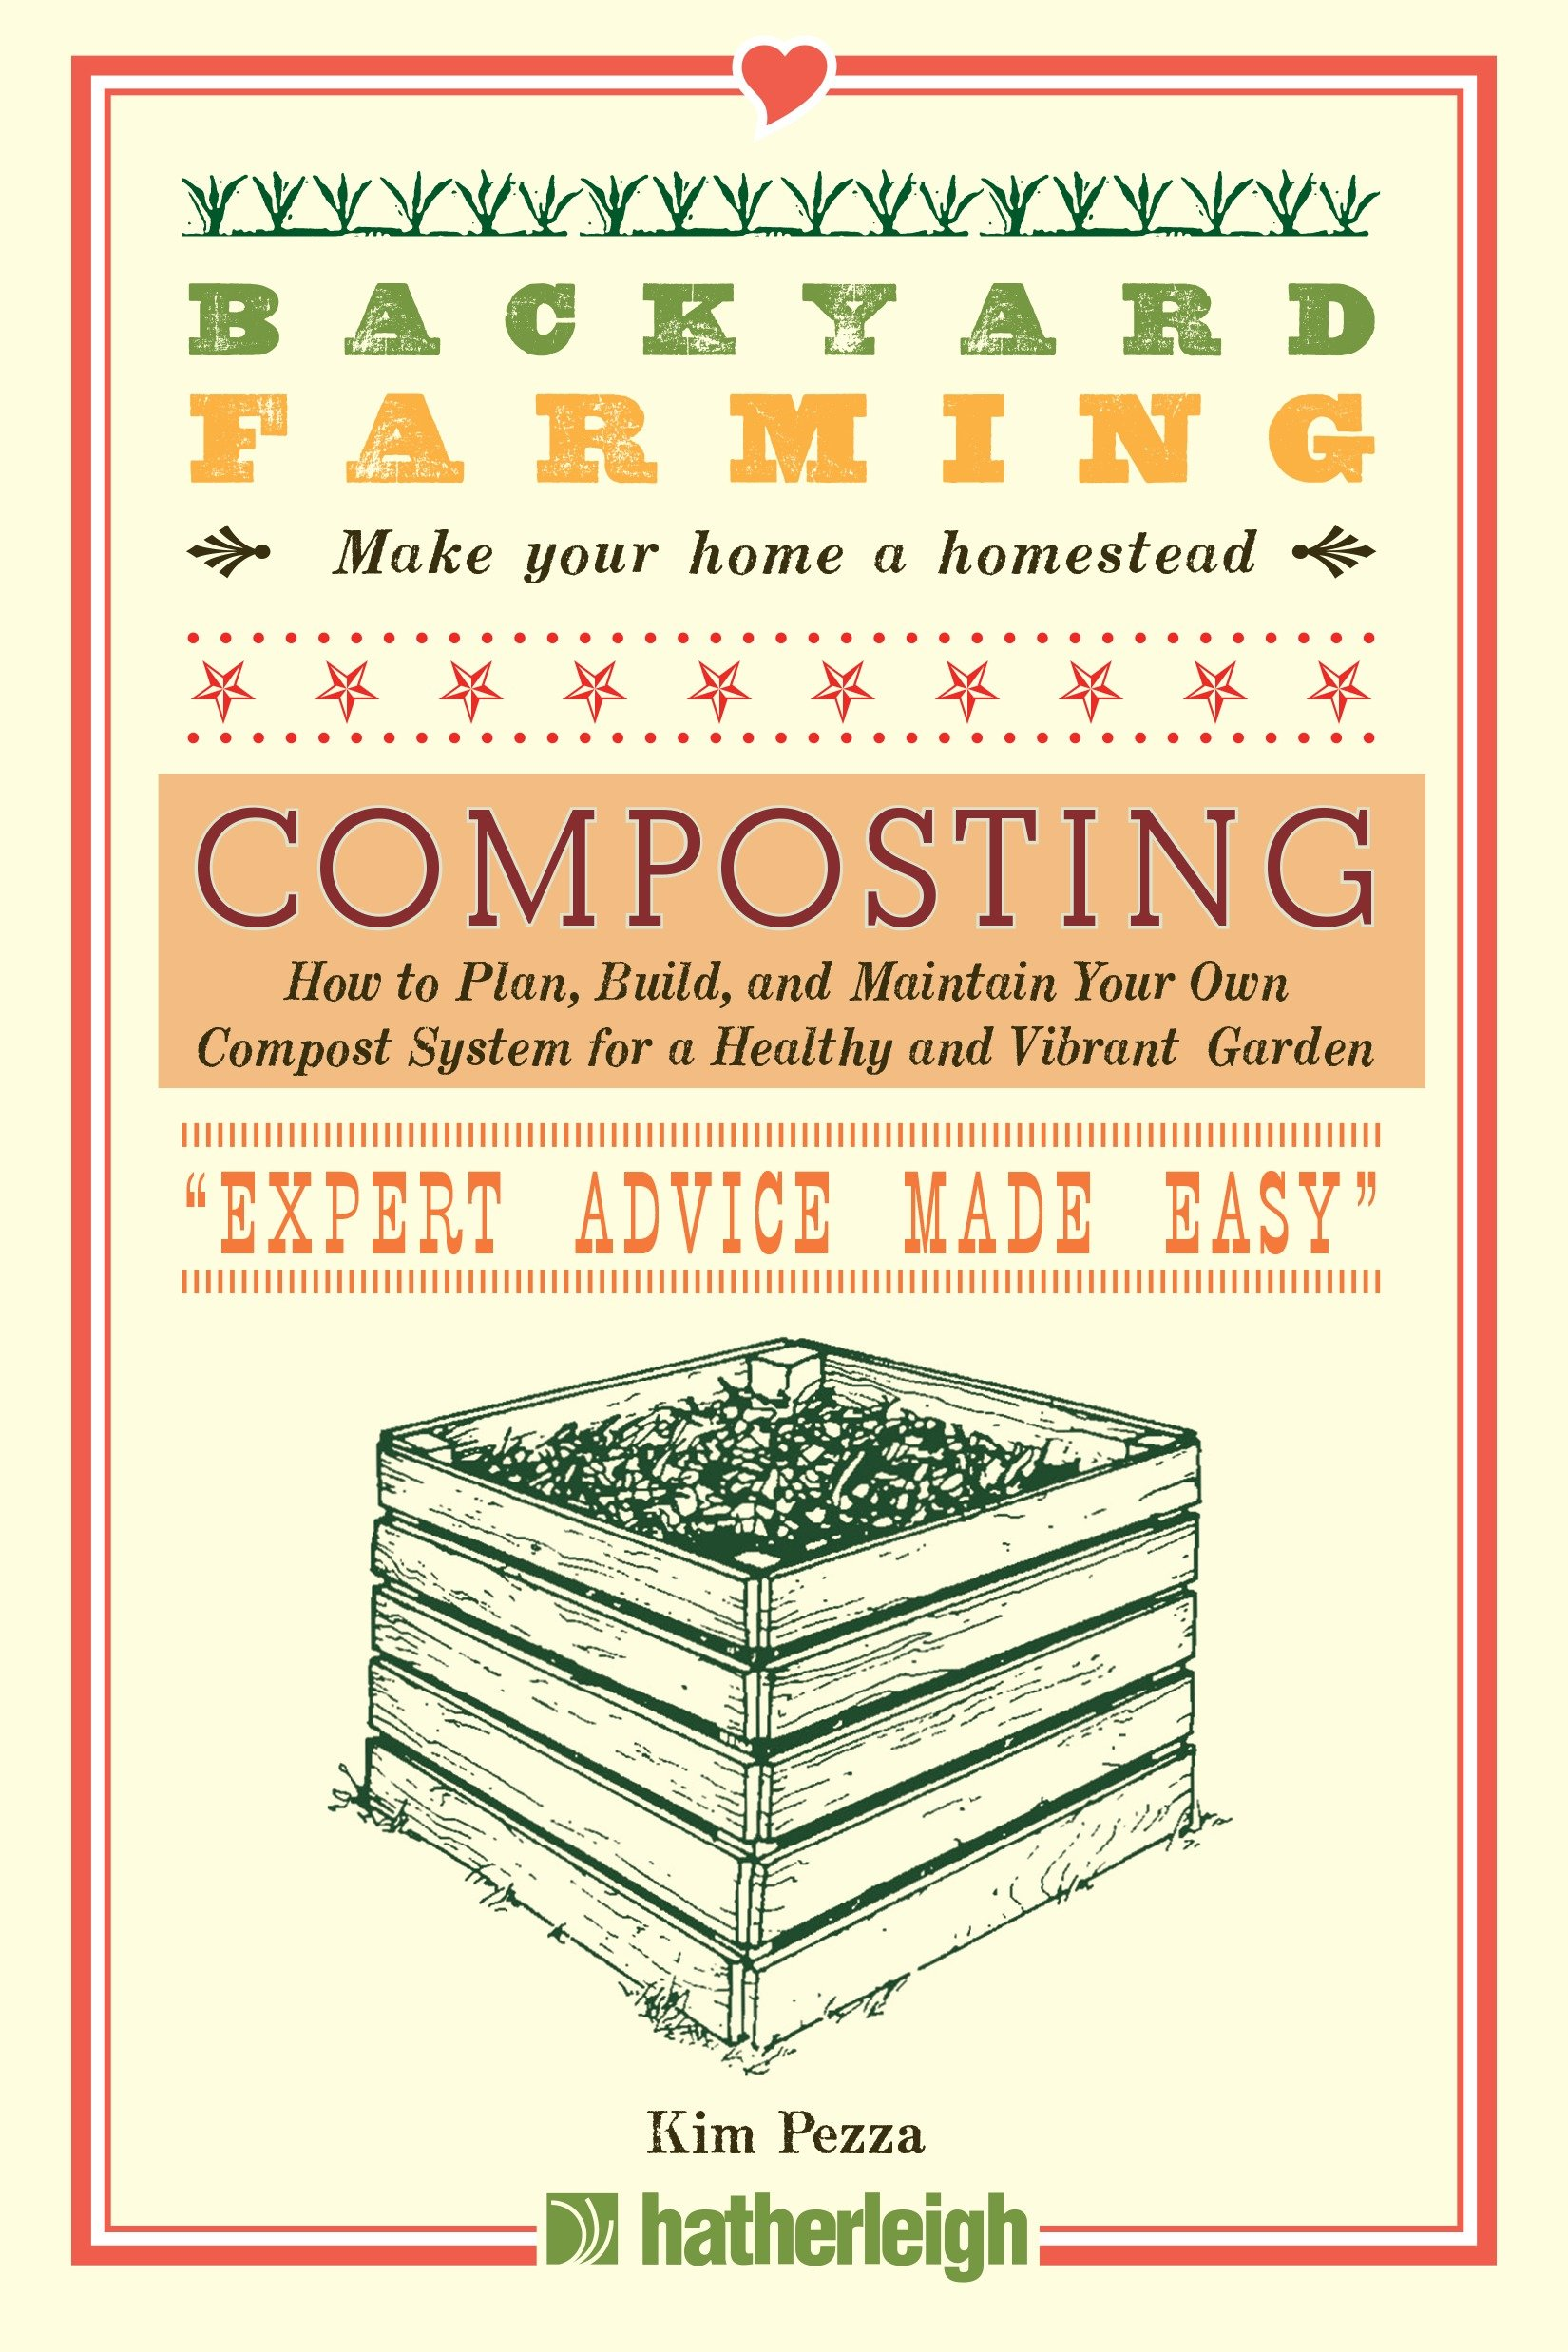 Backyard Farming: Composting How to Plan, Build, and Maintain Your Own Compost System for a Healthy and Vibrant Garden